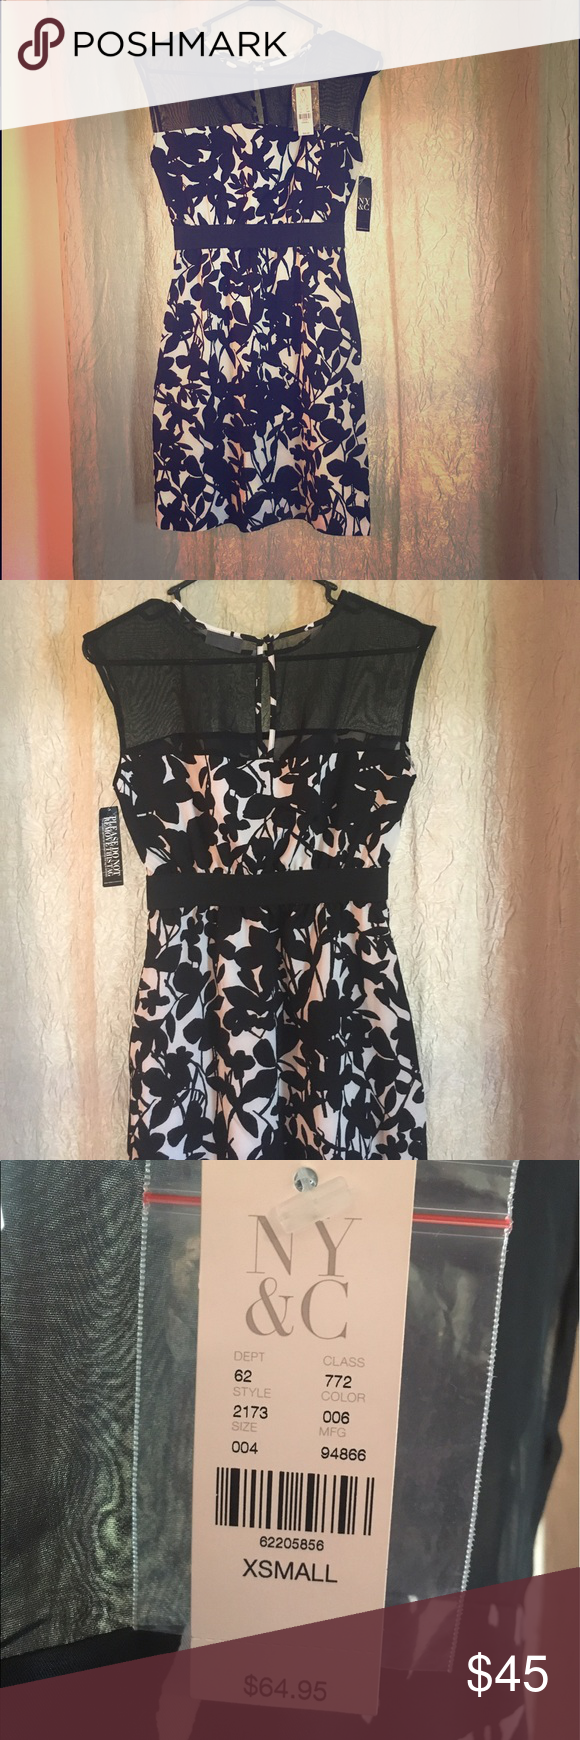 New York & Co. black and white cocktail dress Black and white sleeveless cocktail dress, with floral print. Sheer detail from neckline to bust. Keyhole back with button closure detail. Comfortable, breathable fabric, very flattering fit. New York & Company Dresses Mini